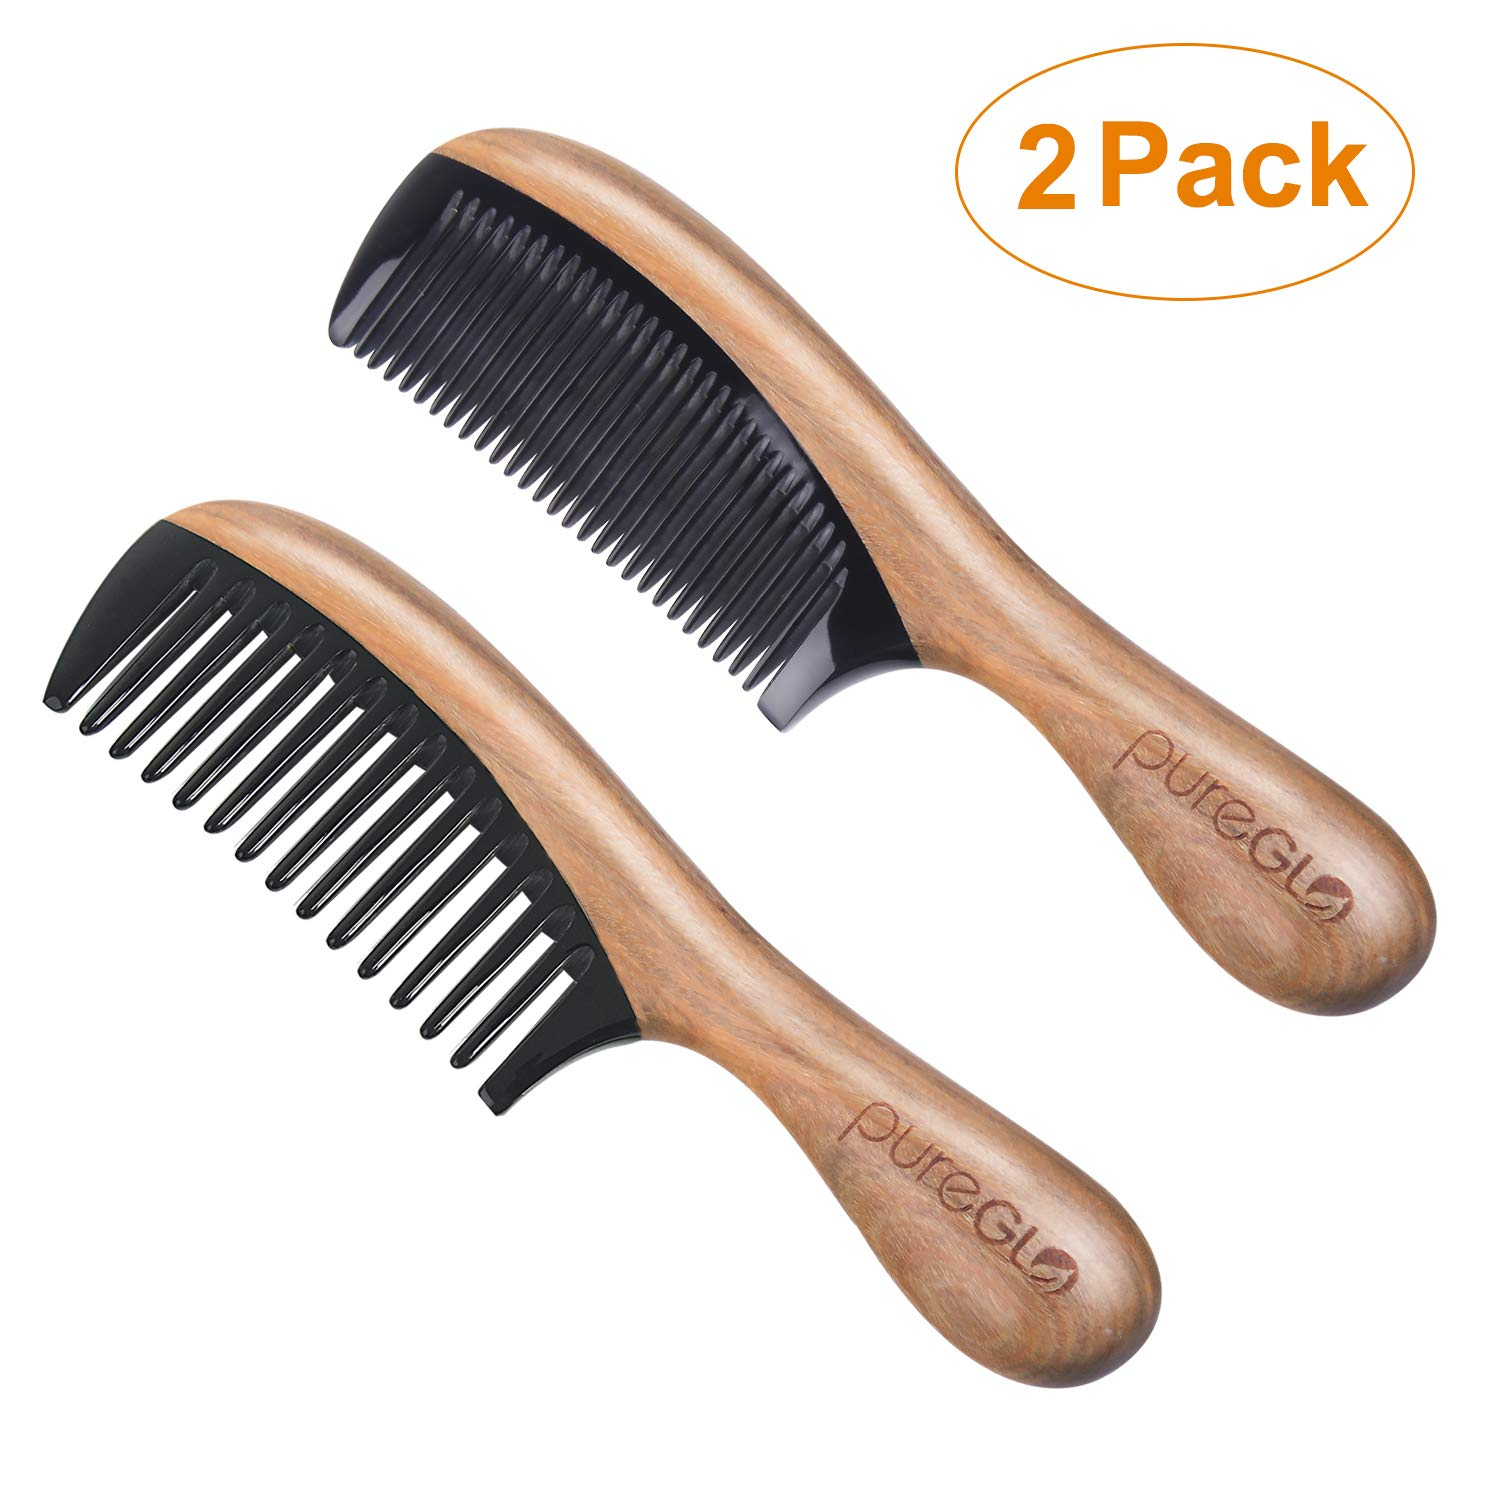 Wooden Hair Combs [Gift Box] – pureGLO Anti-Static Detangling Comb Set for Men Women Kids - Fine and Wide Tooth Combs for Straight Curly Wavy Dry Wet Thick or Fine Hair by pureGLO (Image #1)